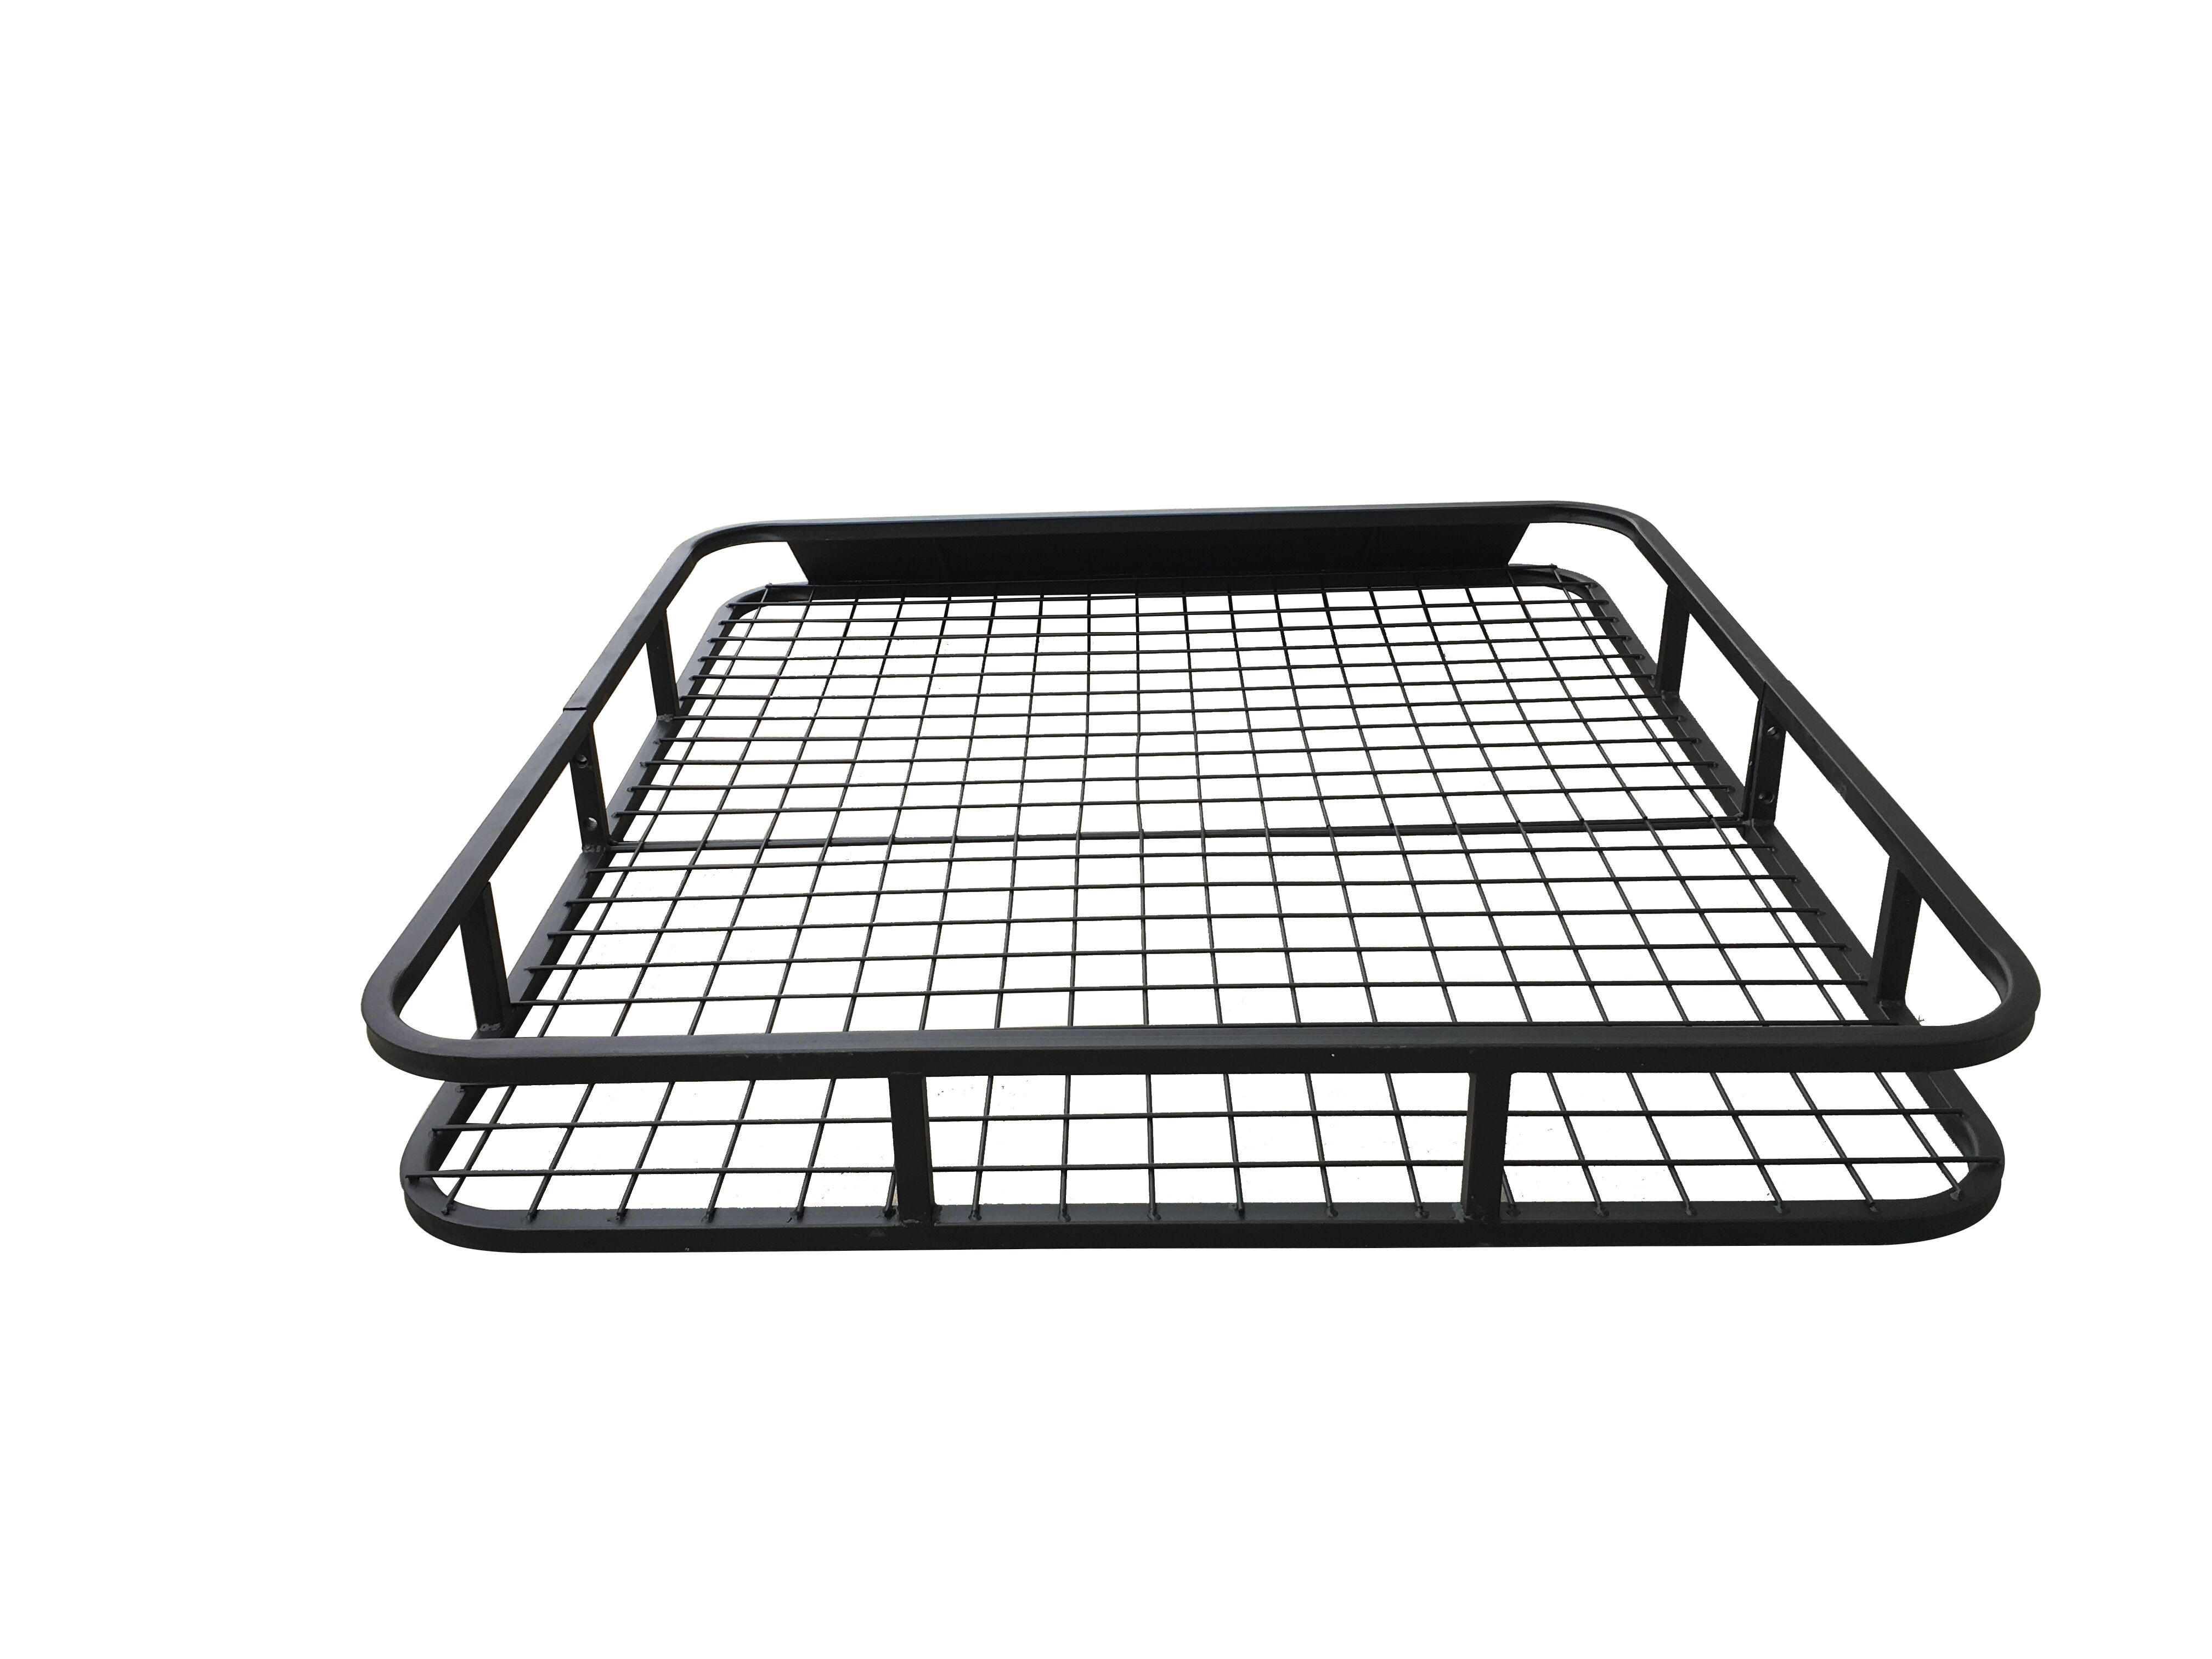 Universal Roof Rack Basket – Car Luggage Carrier Steel Cage Vehicle Cargo 2